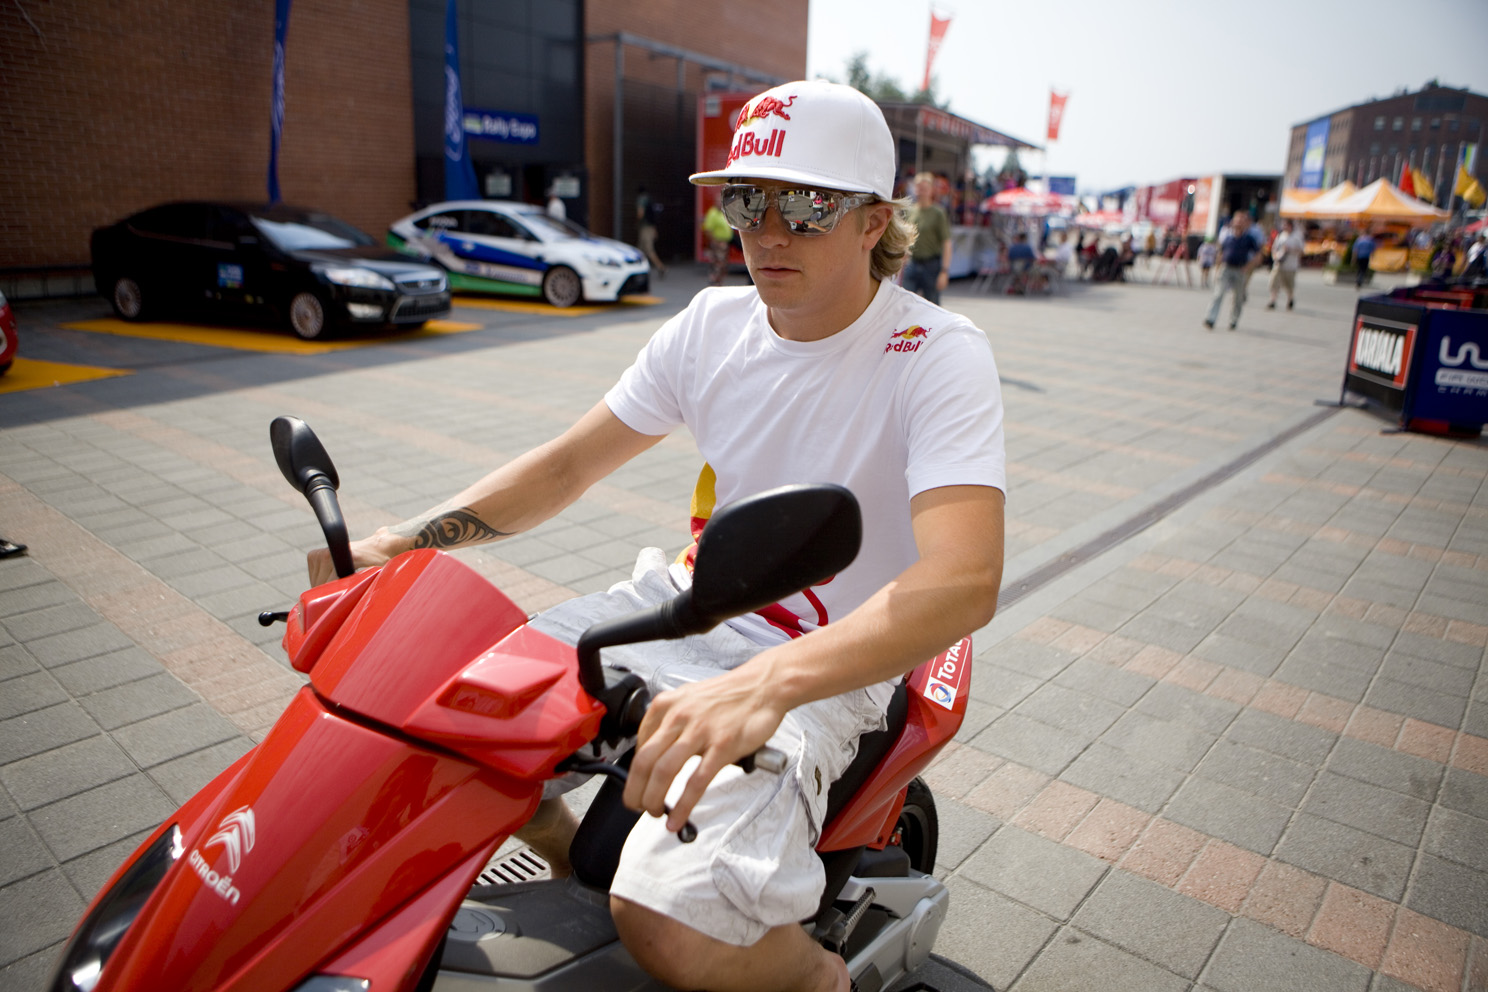 Kimi Raikkonen, on a bike (red)